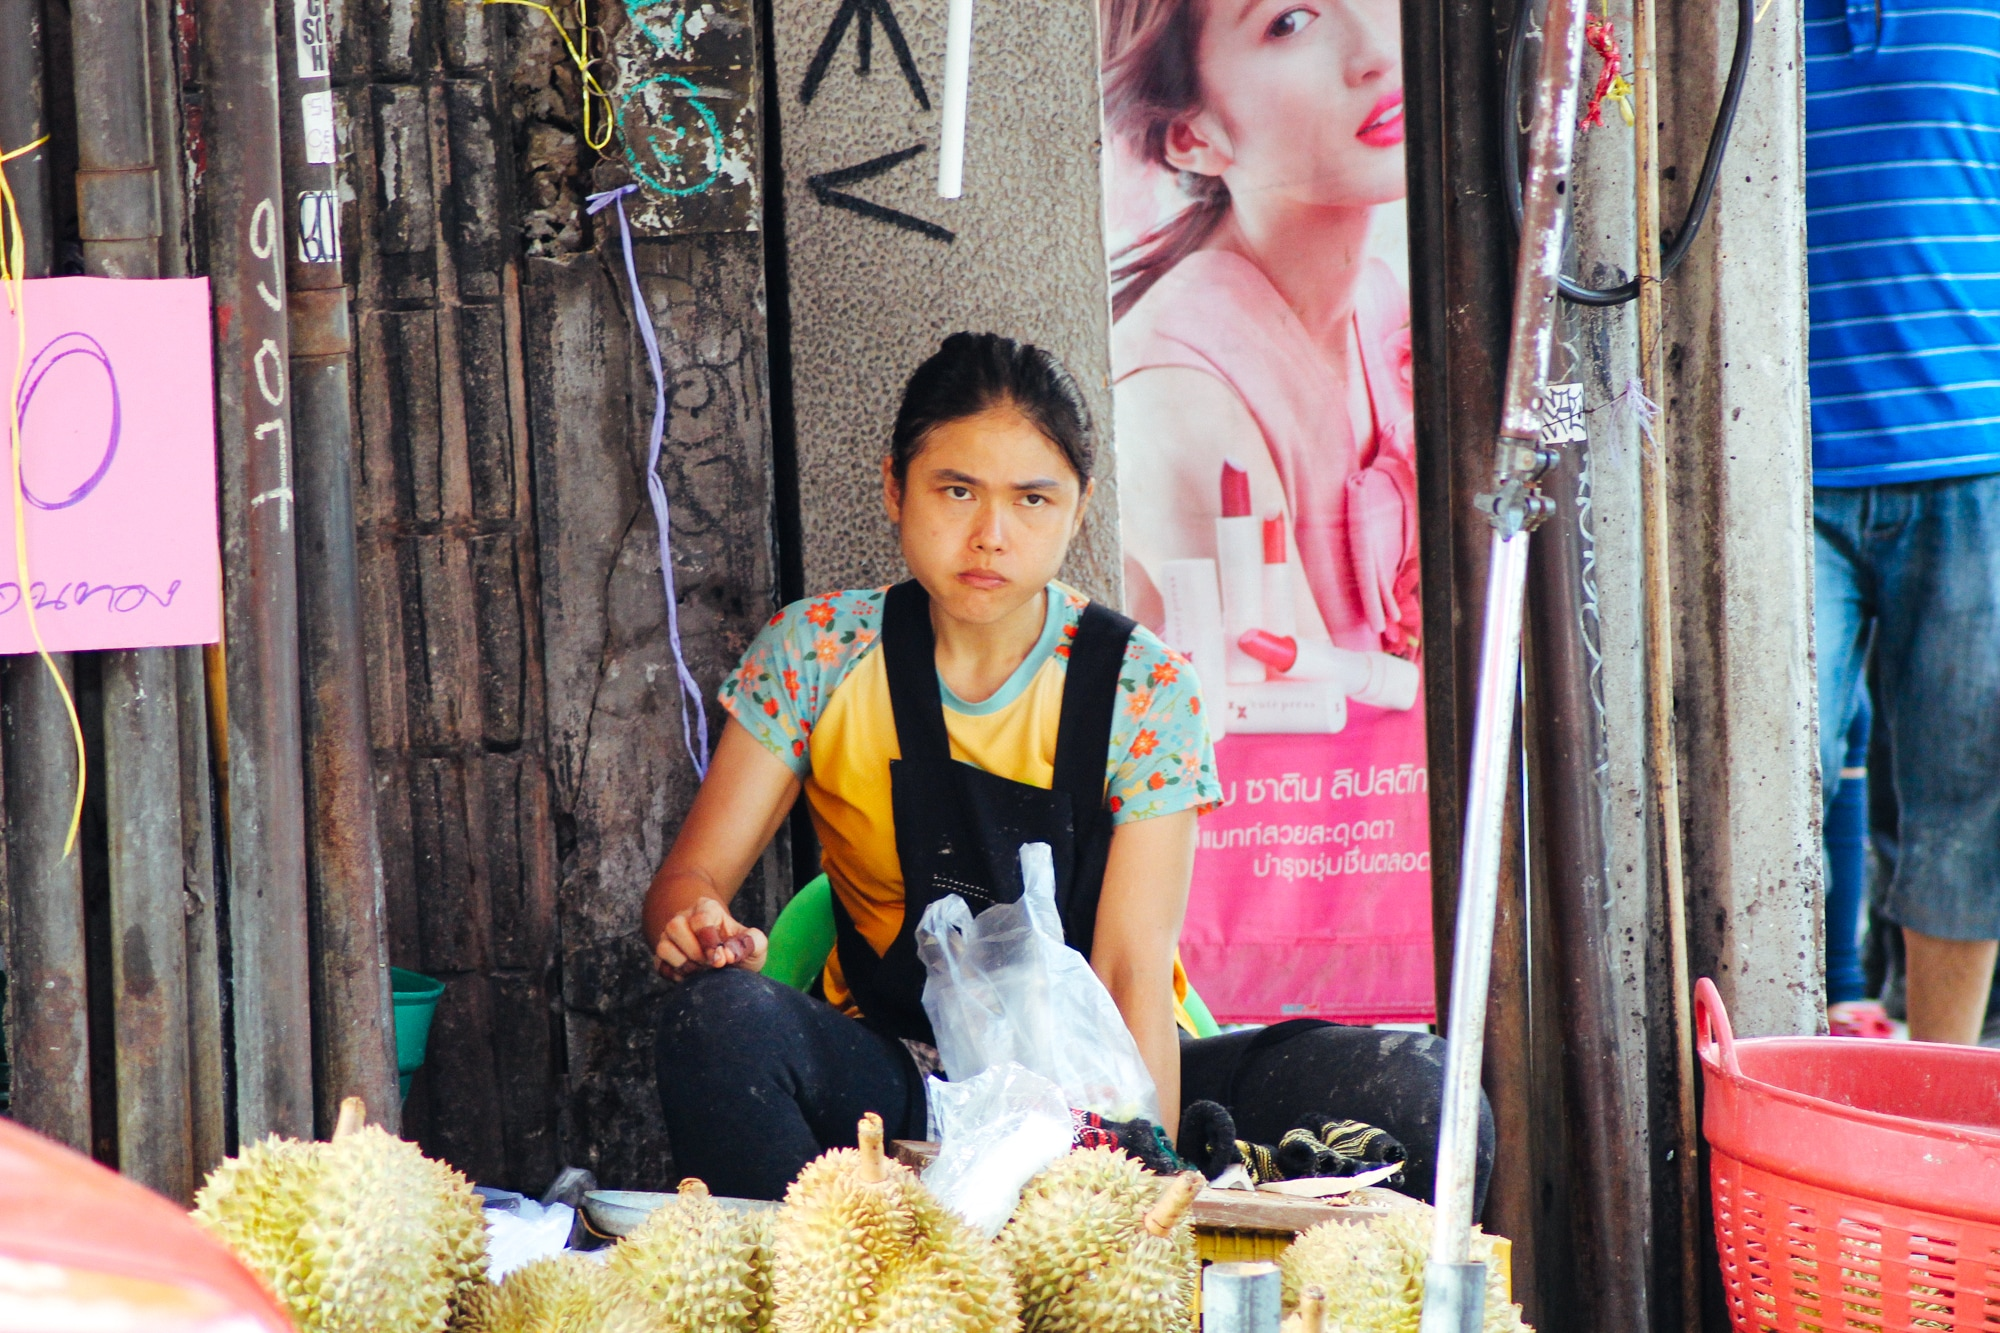 A woman selling durian